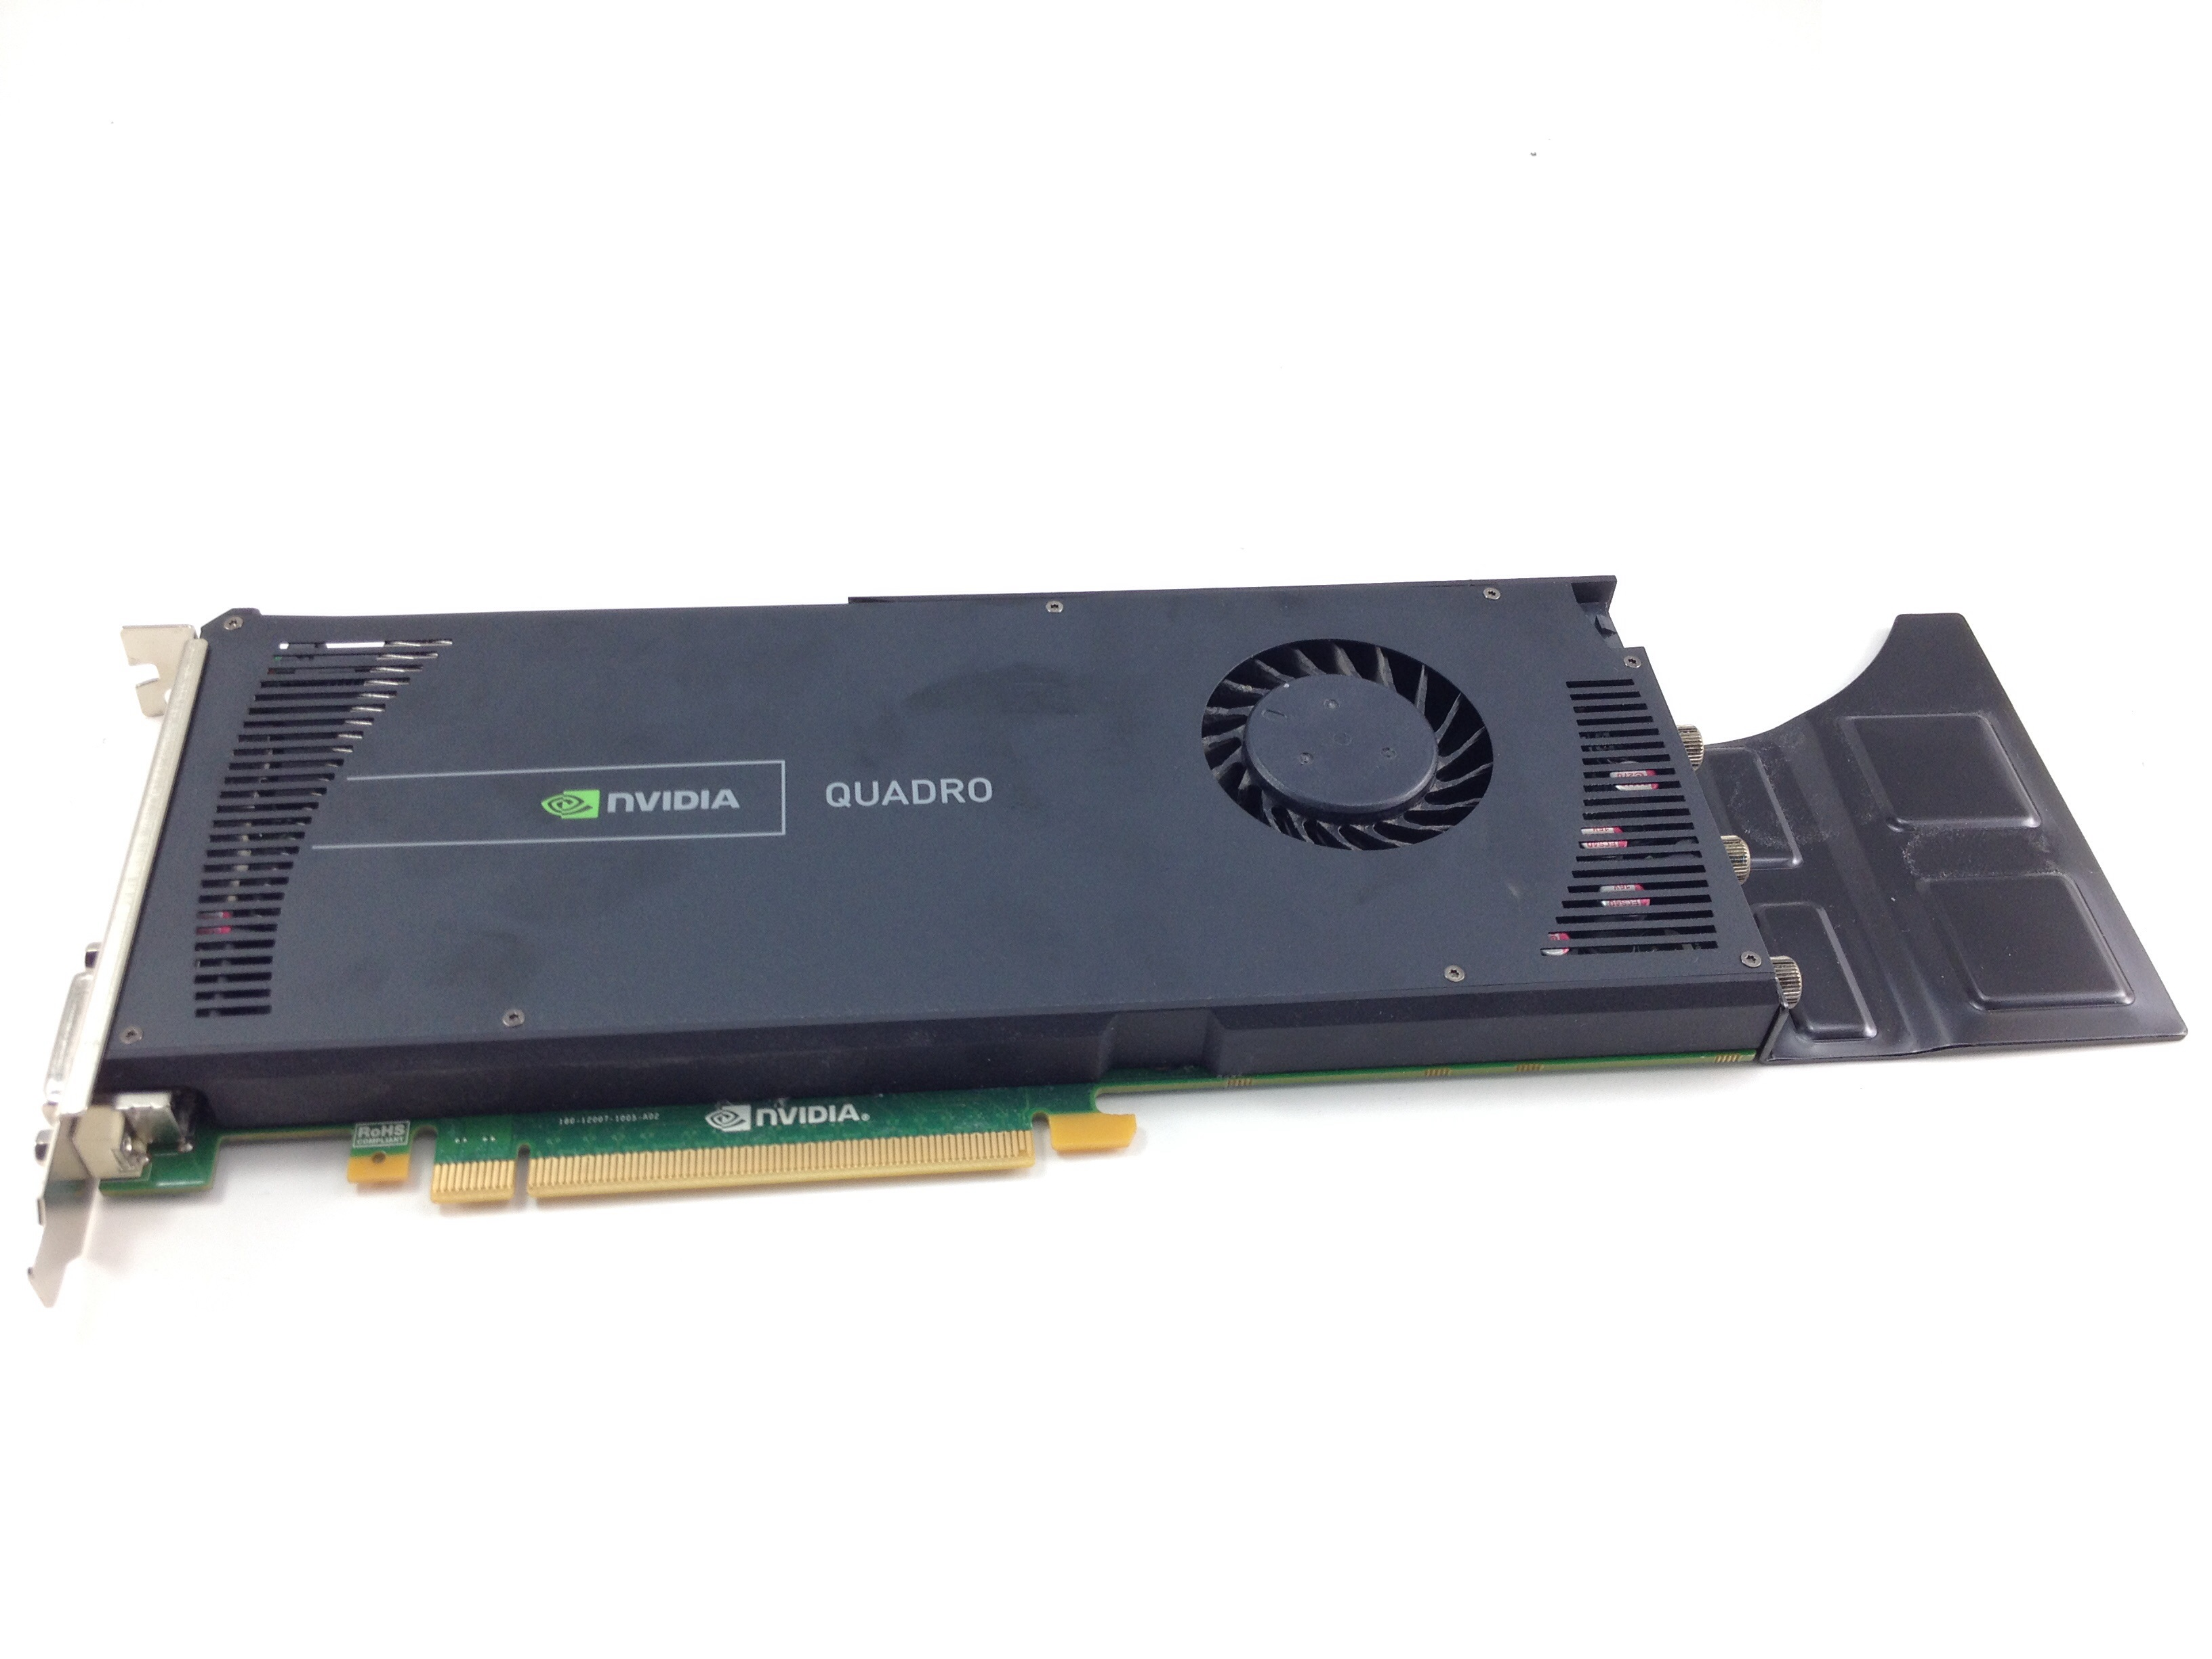 IBM Nvidia Quadro 4000 2Gb GDDR5 PCI-E Video Graphics Card (89Y8627)